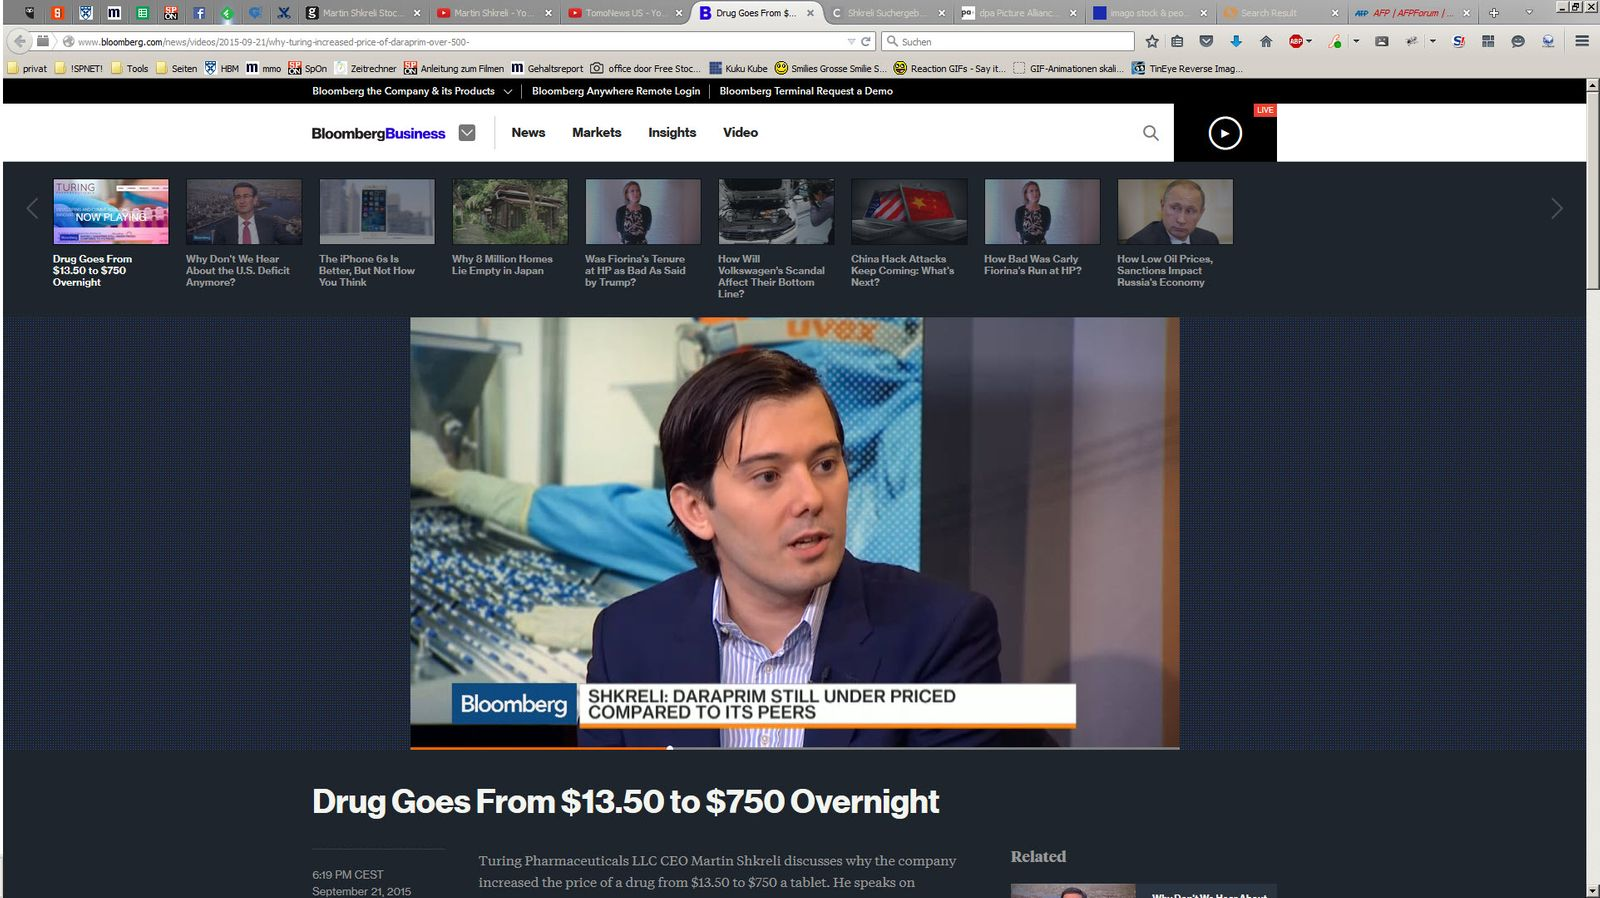 SCREENSHOT Martin Shkreli - Drug Goes From $13.50 to $750 Overnight